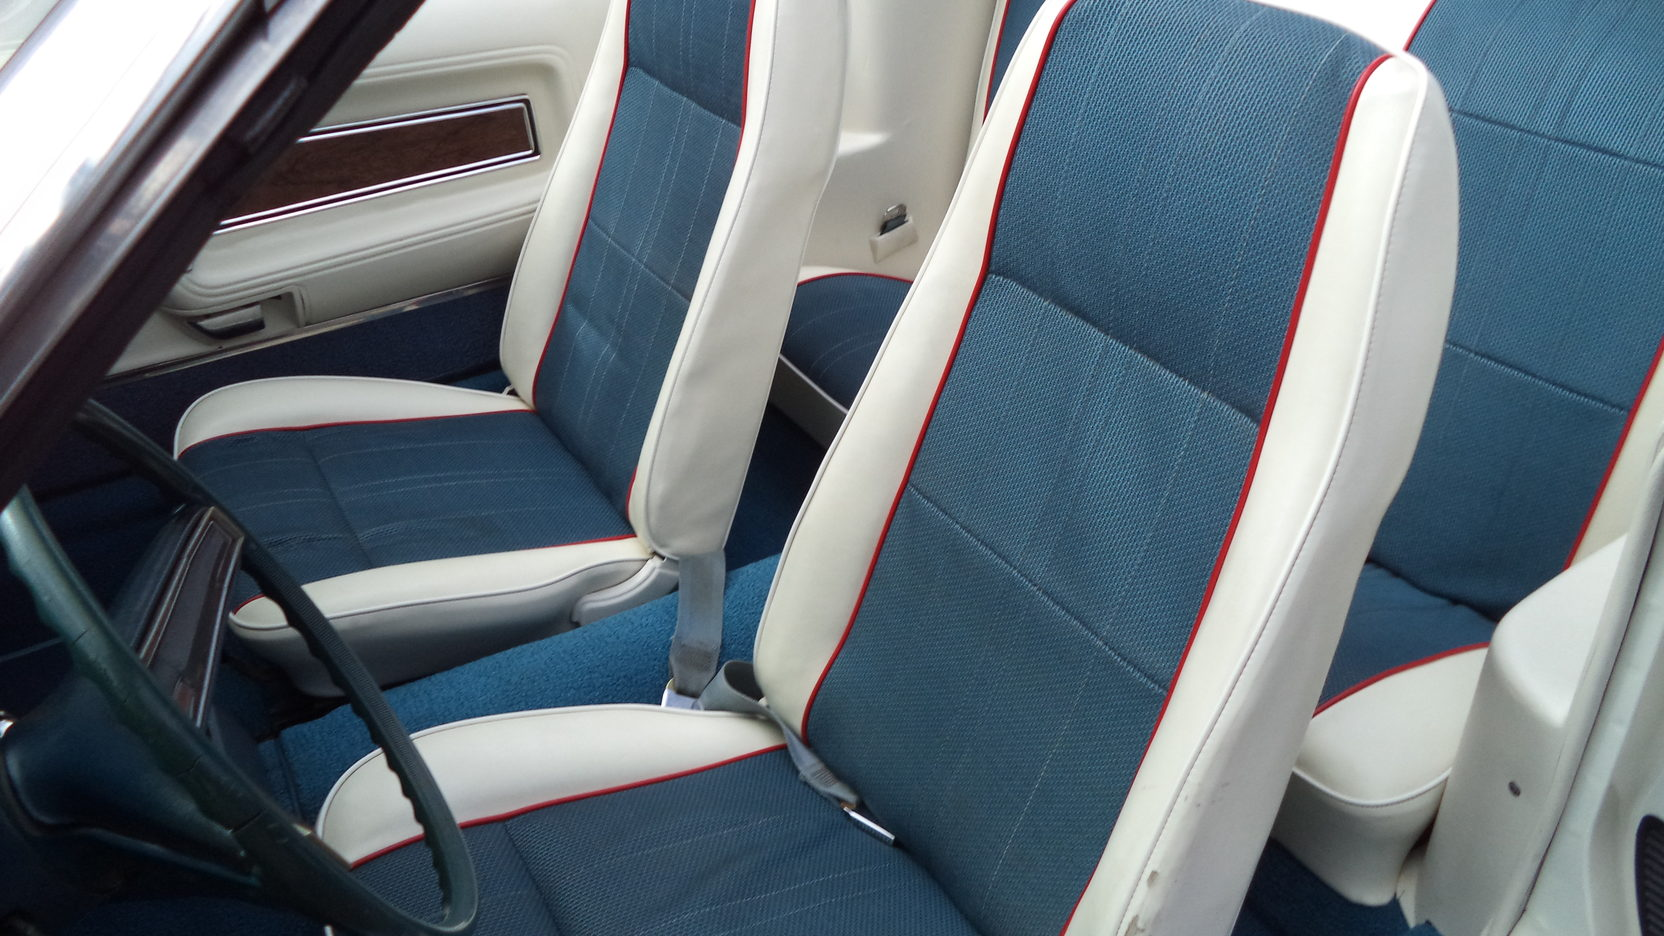 1972 Ford Mustang Sprint USA front seats